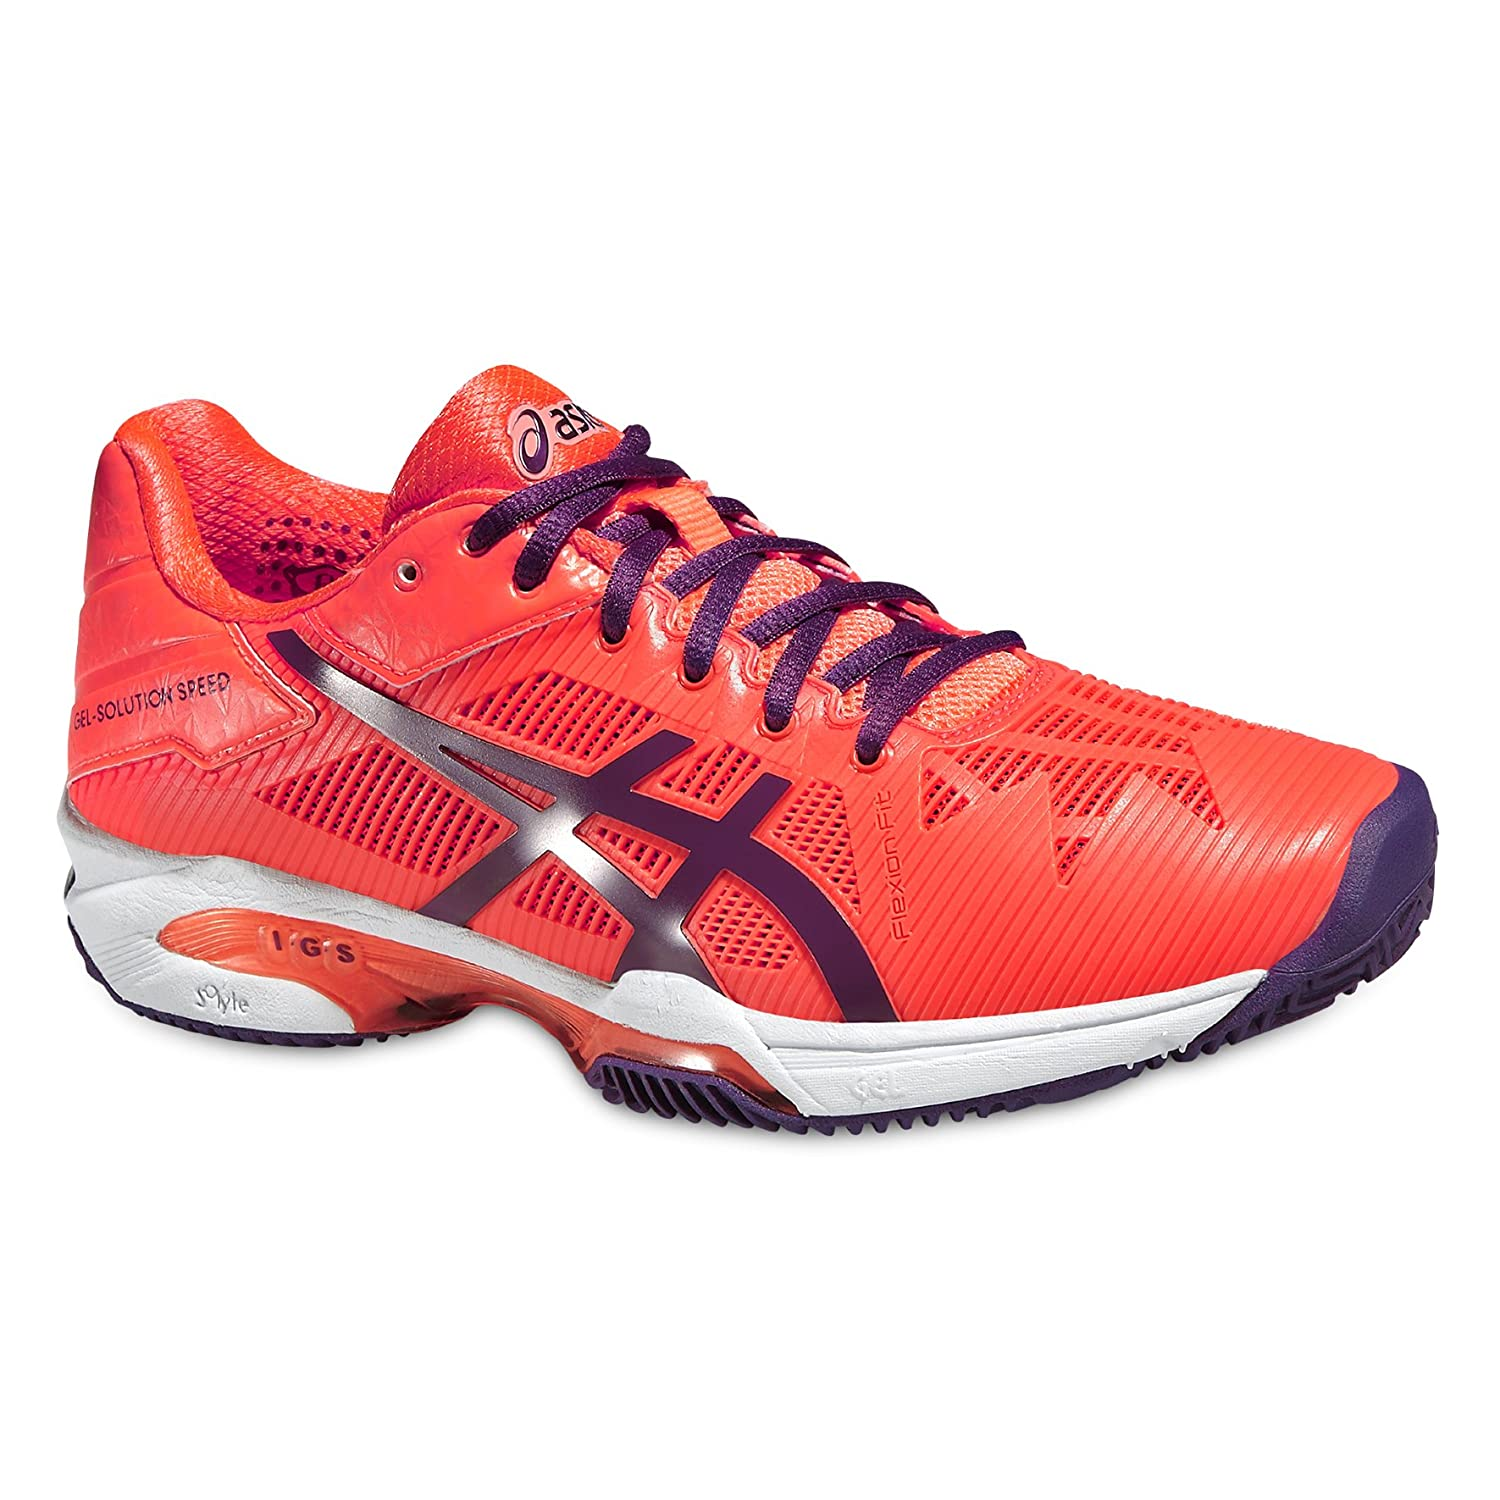 ASICS Damen Gel-Solution Speed 3 Clay Tennisschuhe